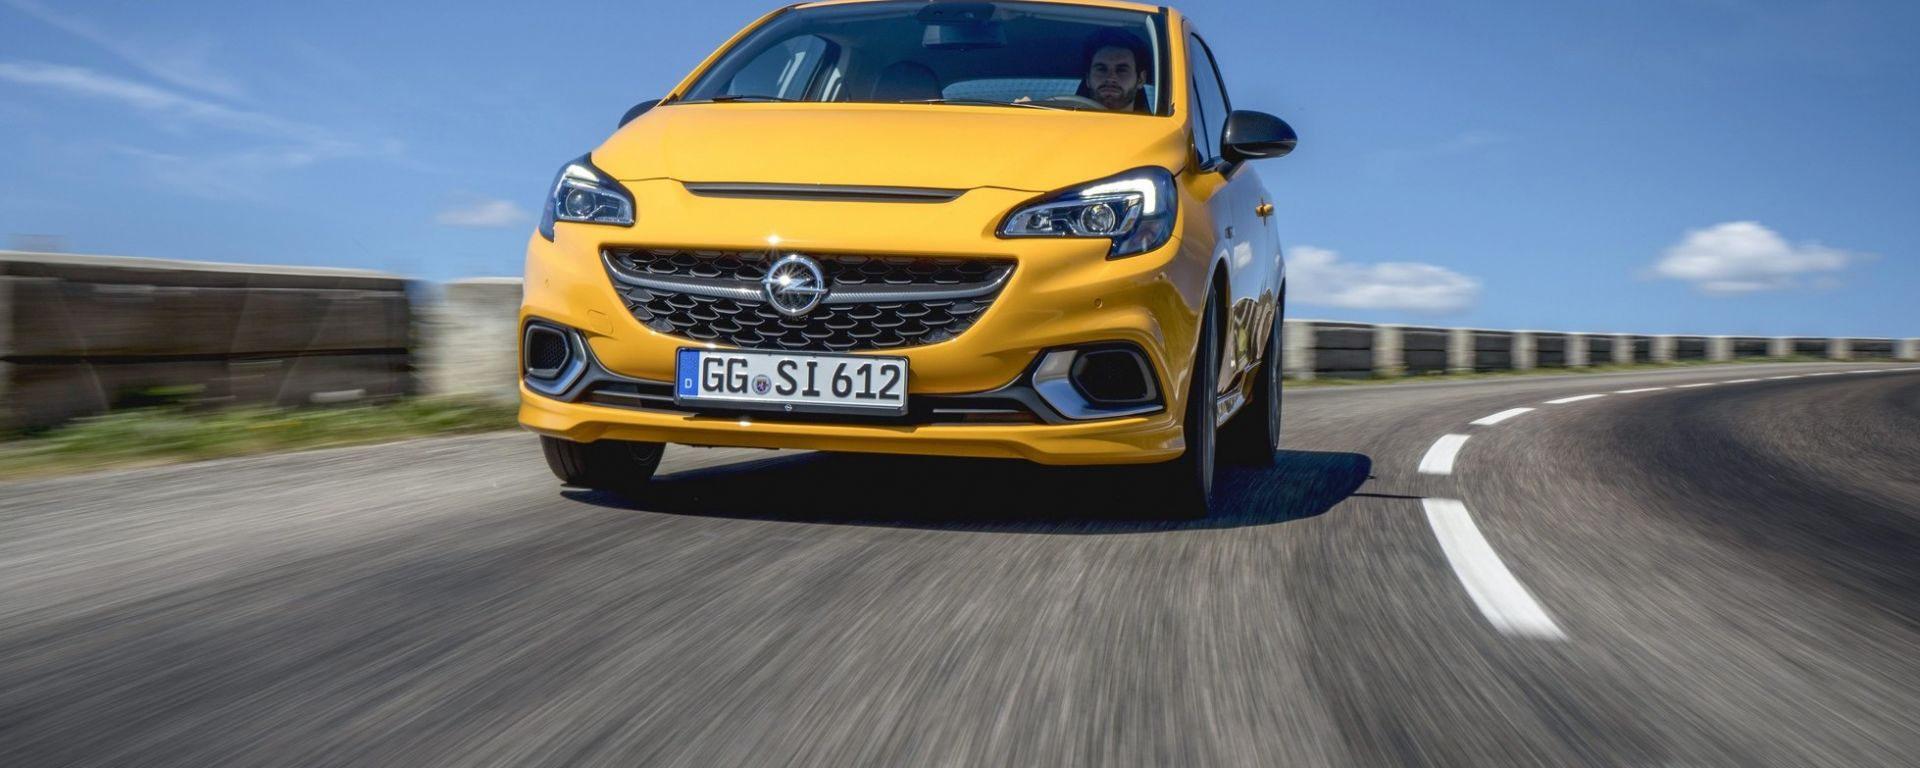 Nuova Opel Corsa GSi, supercompatta per intenditori [VIDEO]